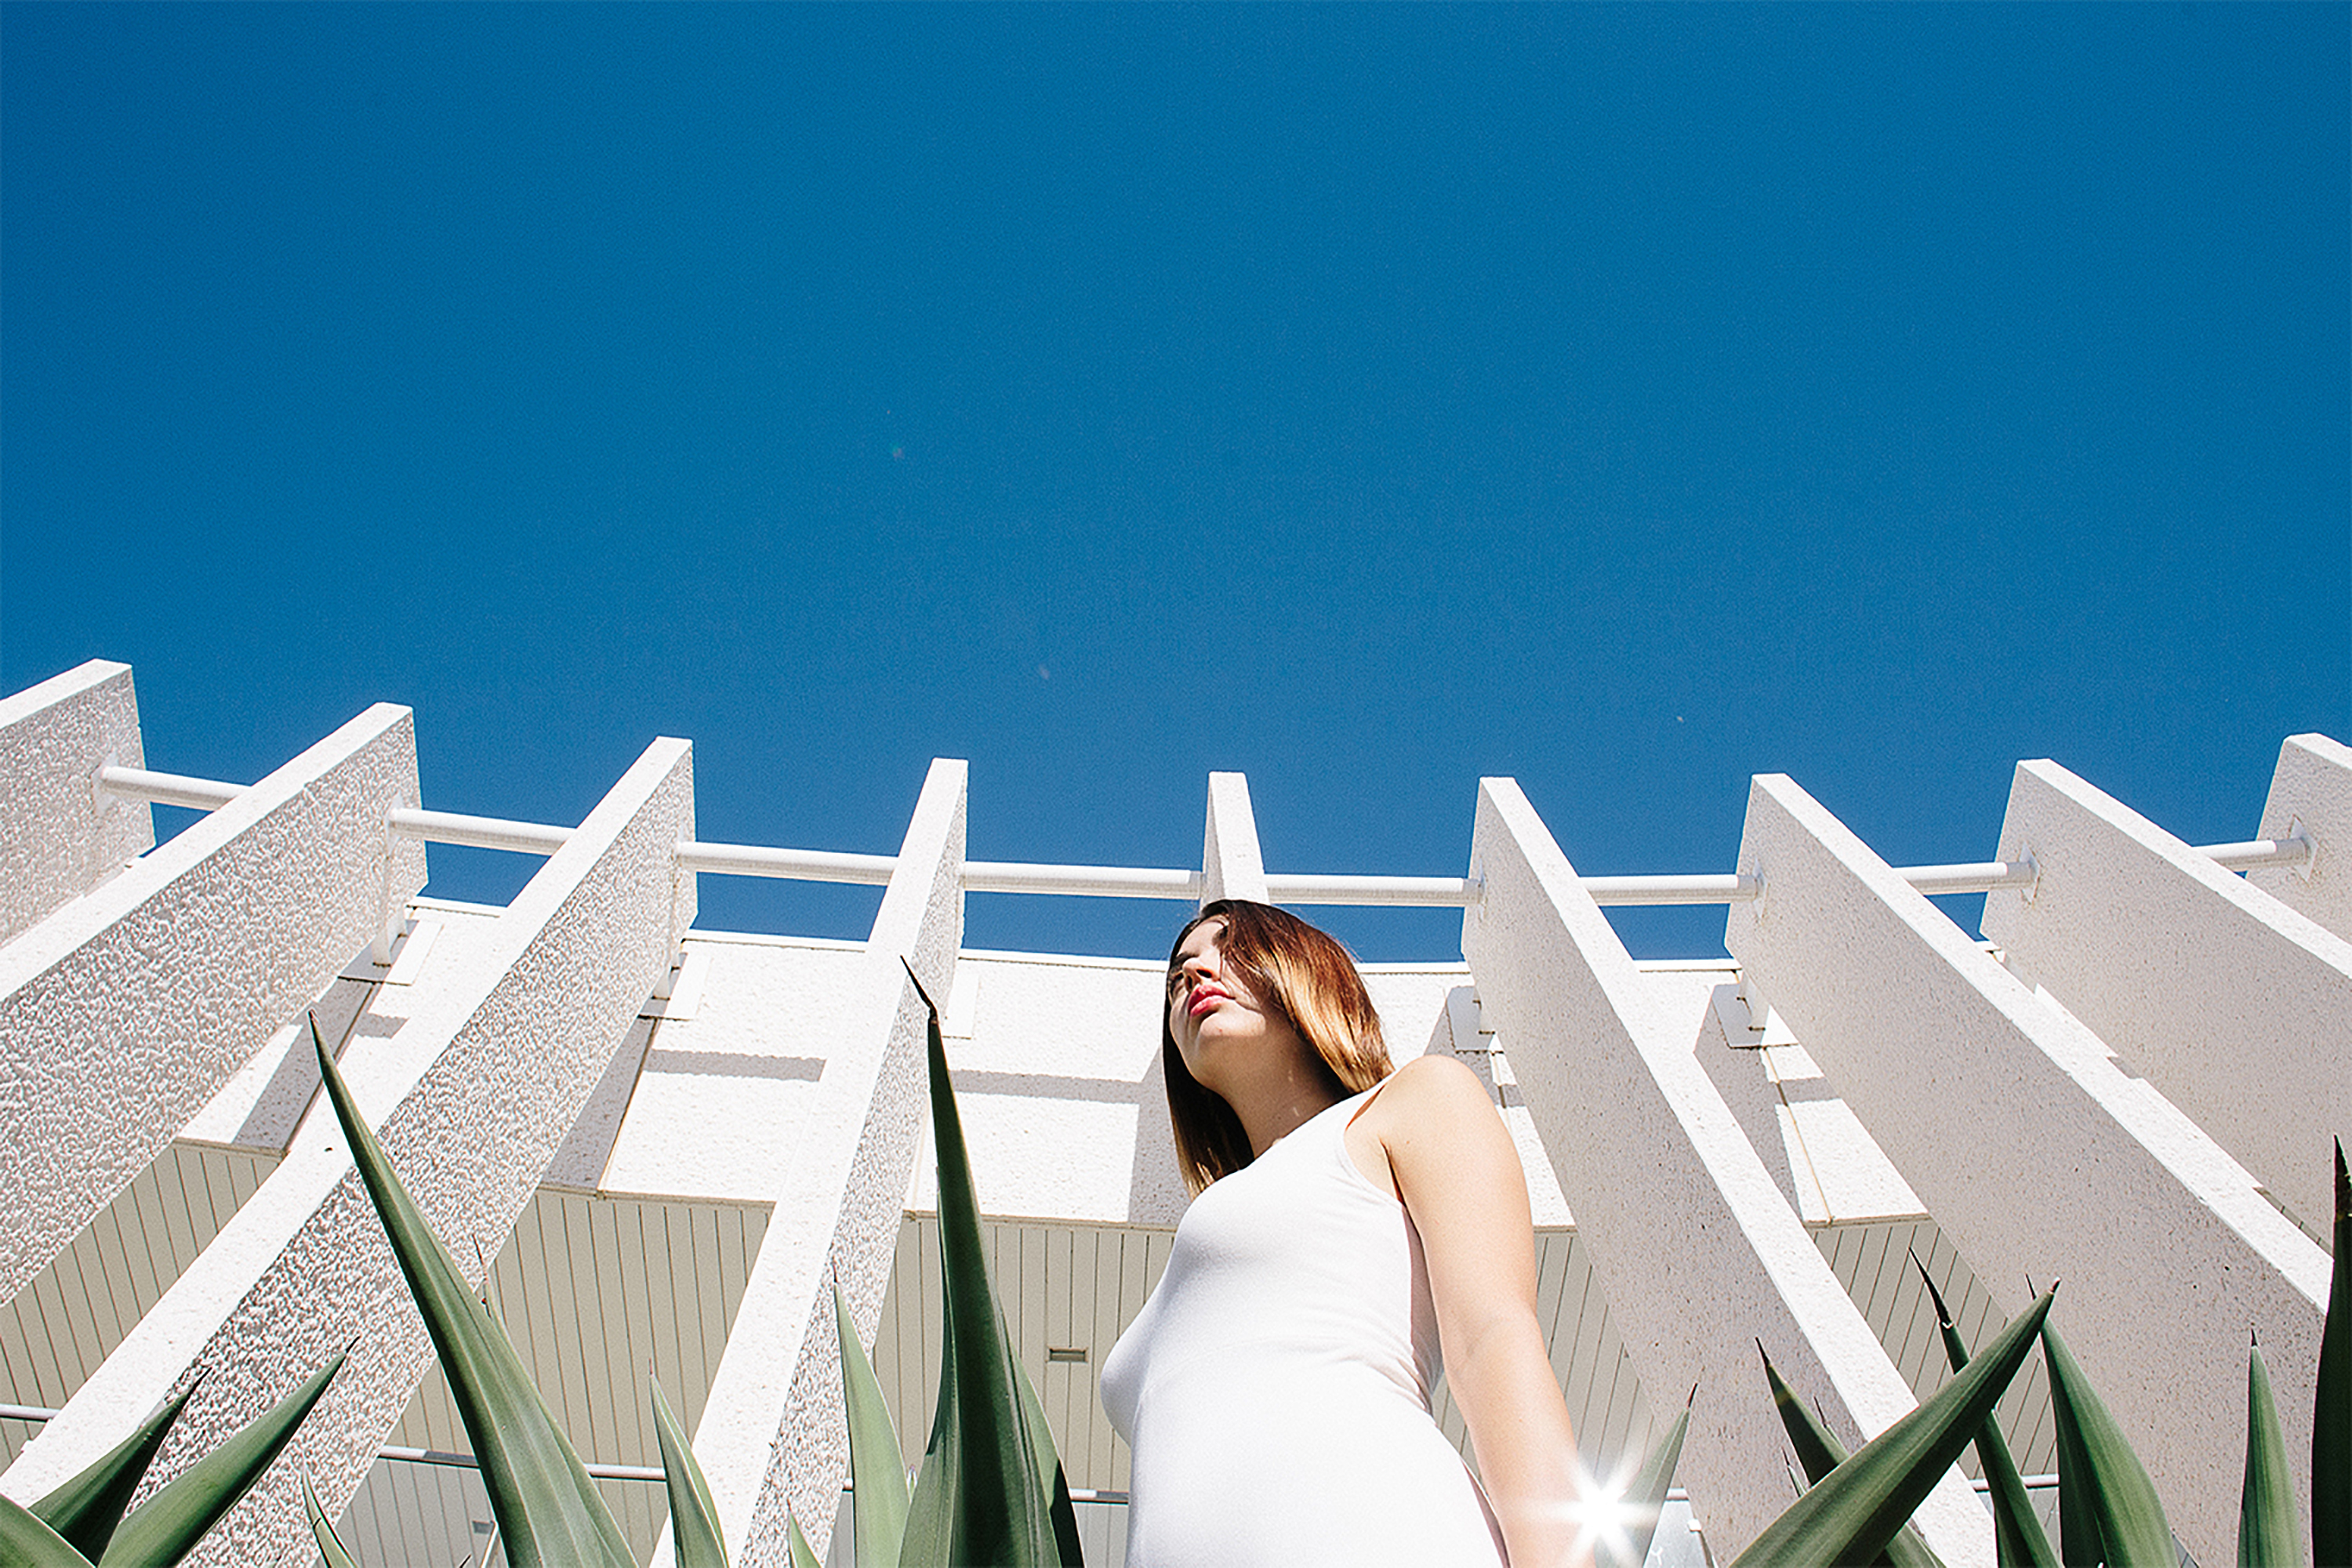 White building and blue skies woman in white dress green plants architecture photography fashion